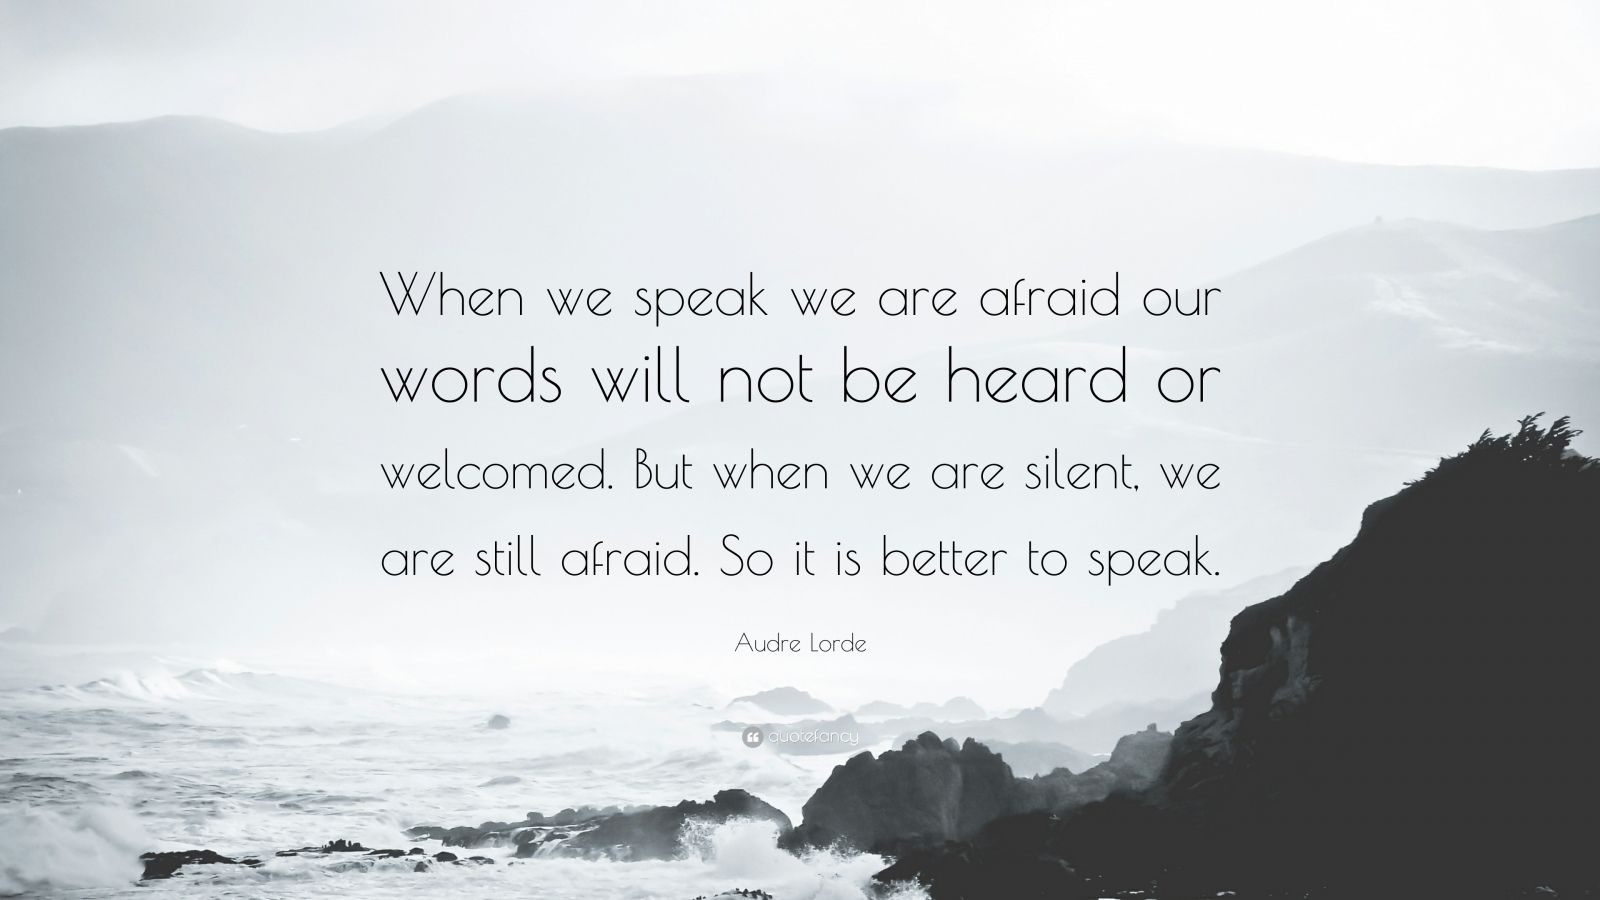 """Audre Lorde Quote: """"When we speak we are afraid our words will not be heard or welcomed. But when we are silent, we are still afraid. So it is better to speak."""""""